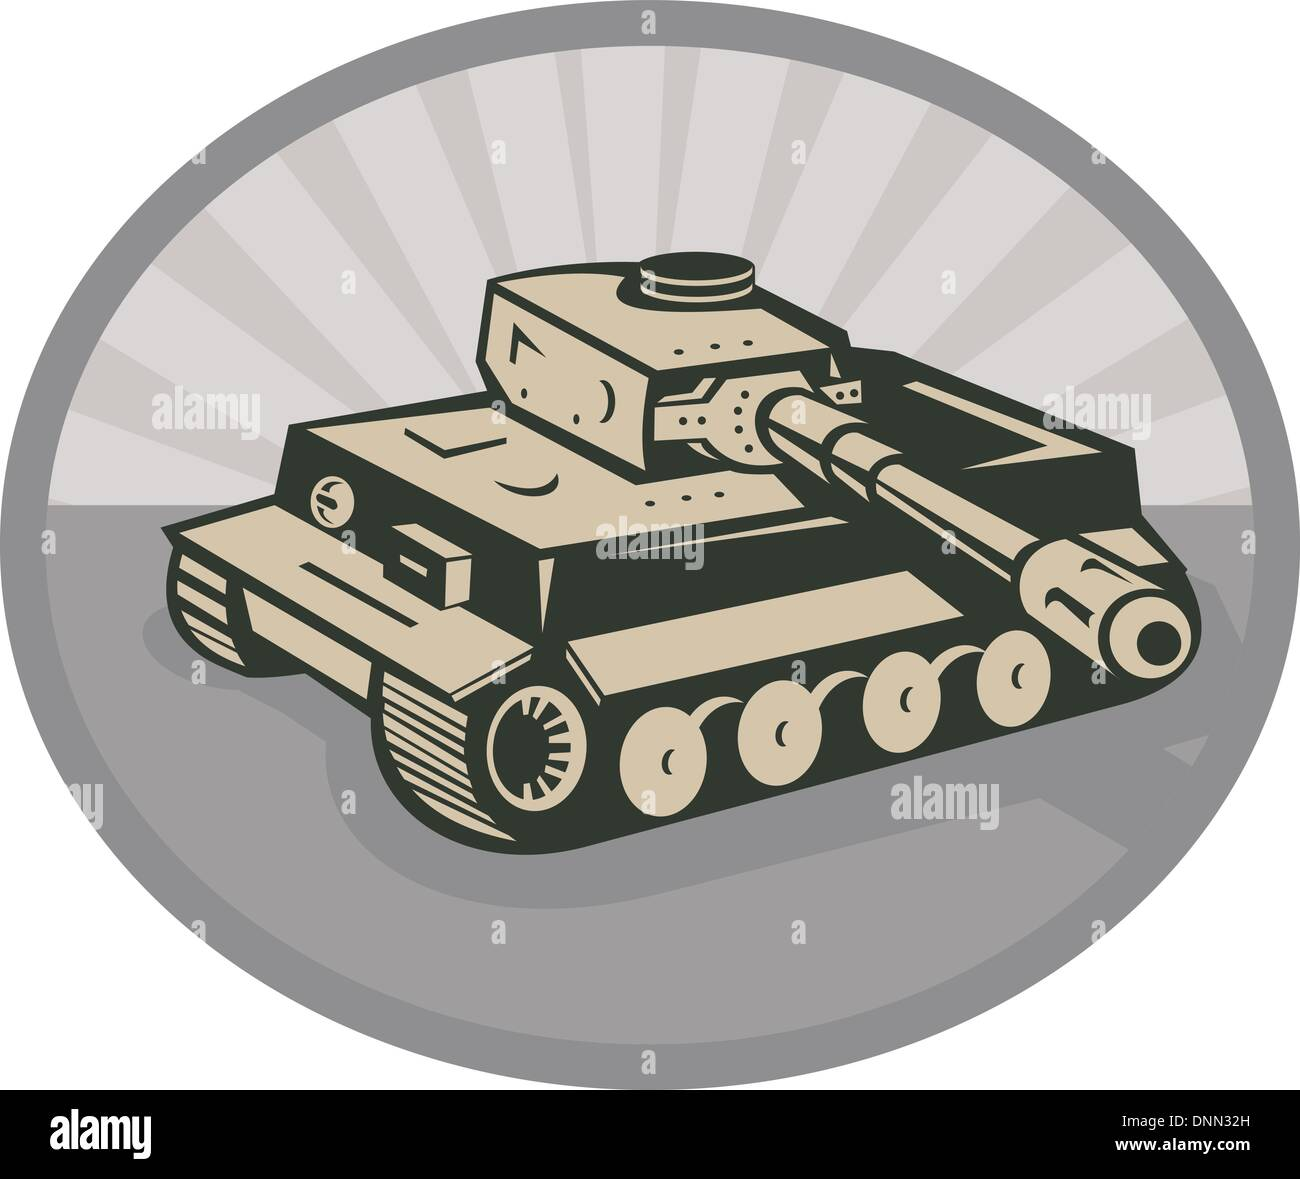 illustration of a world war two German panzer battle tank aiming its cannon set inside an ellipse with sunburst in the background - Stock Vector